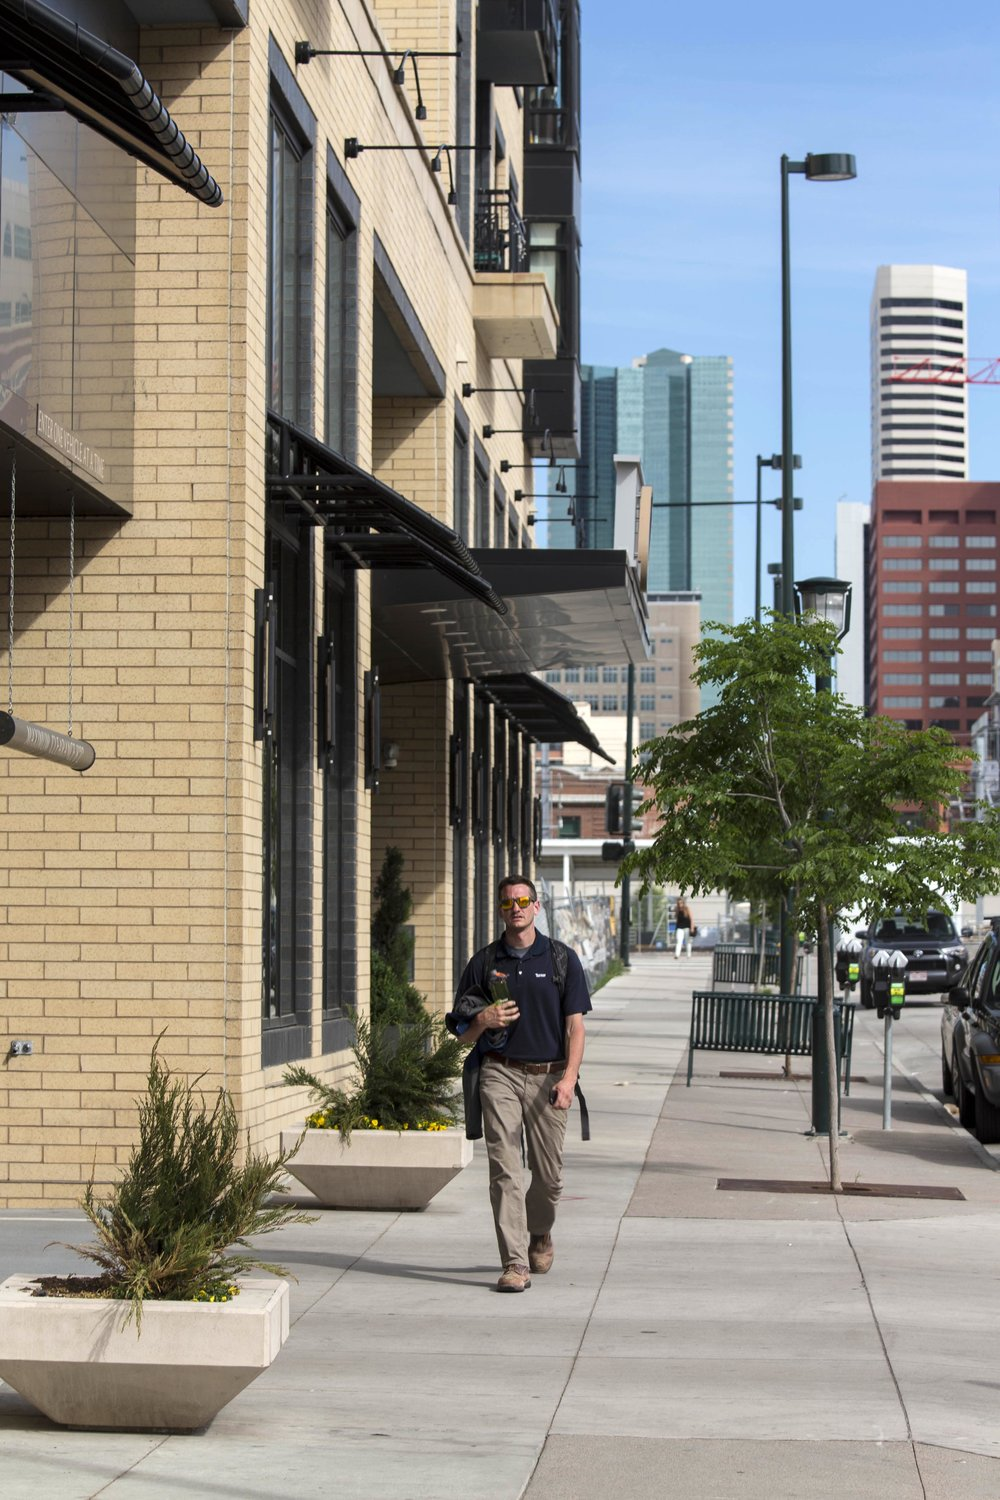 "<img src="" studioINSITE_Elan_Union_Station_Streetscape.jpg "" alt=""Urban Living, Multifamily, Mixed Use, Urban grocer, Streetscape, Courtyard, Amenity Deck, Fireplace, Grill area, shade structure, Cabanas, Fireplace, Boccee Court, Outdoor Bar, landscape Architecture, Urban Design, Denver, Colorado, Elan Union Station, Denver Union Station, Luxury Living, Luxury Apartments, Luxury Developments  "" title=""Elan Union Station""/>"